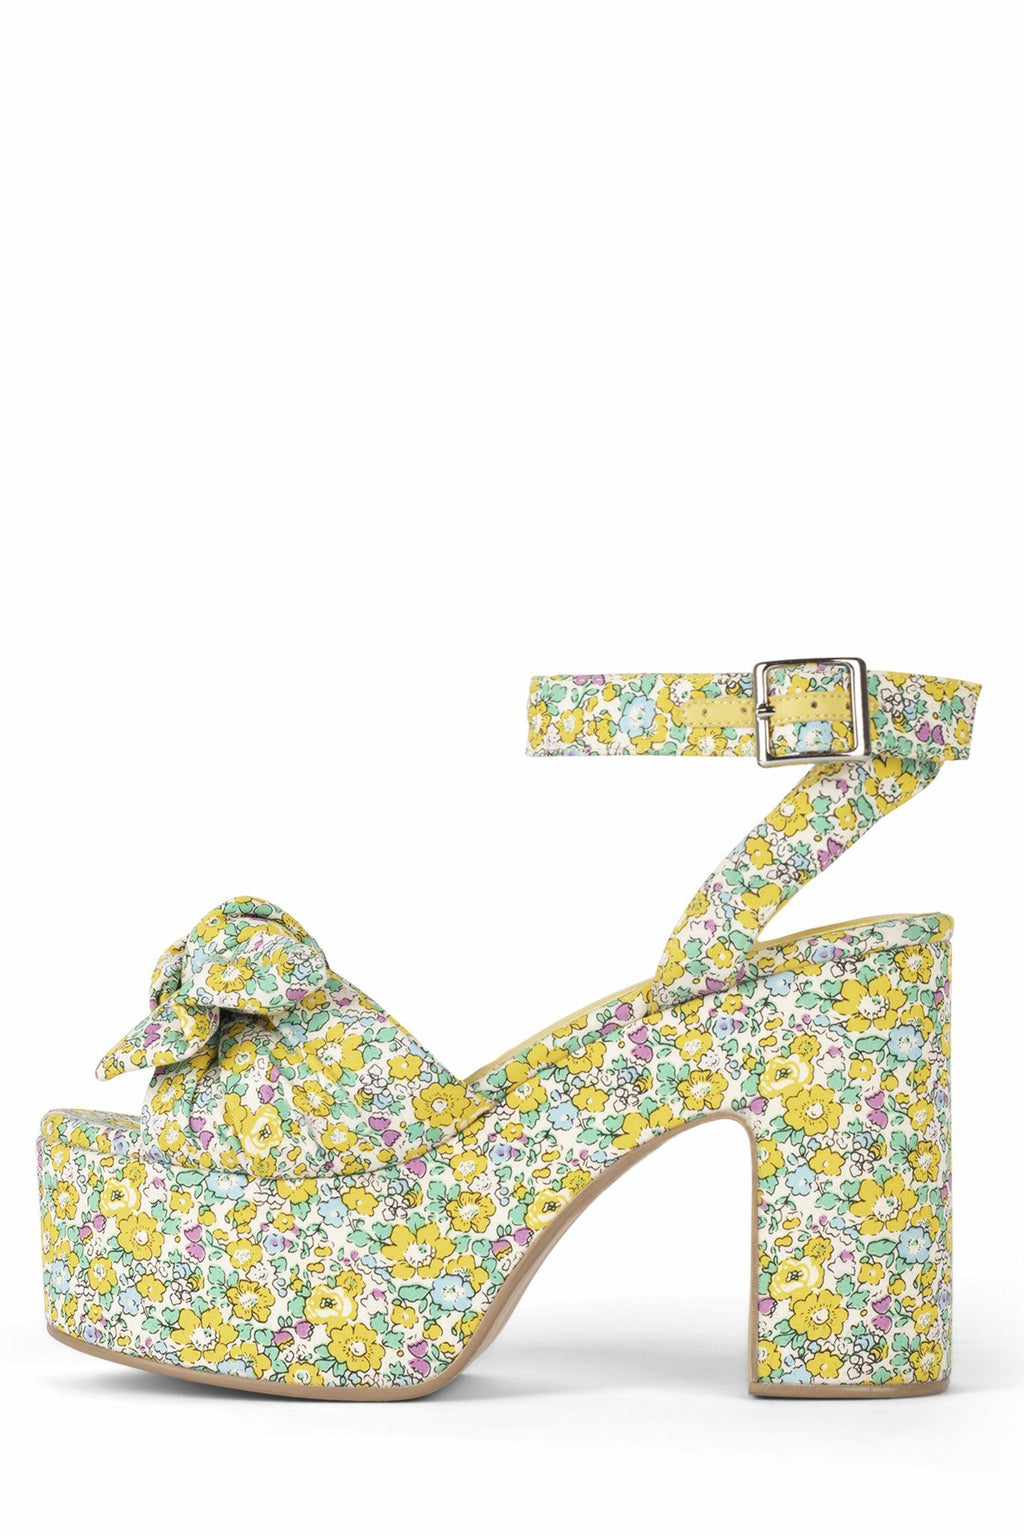 PIC-NIC HS Yellow Multi Floral 5